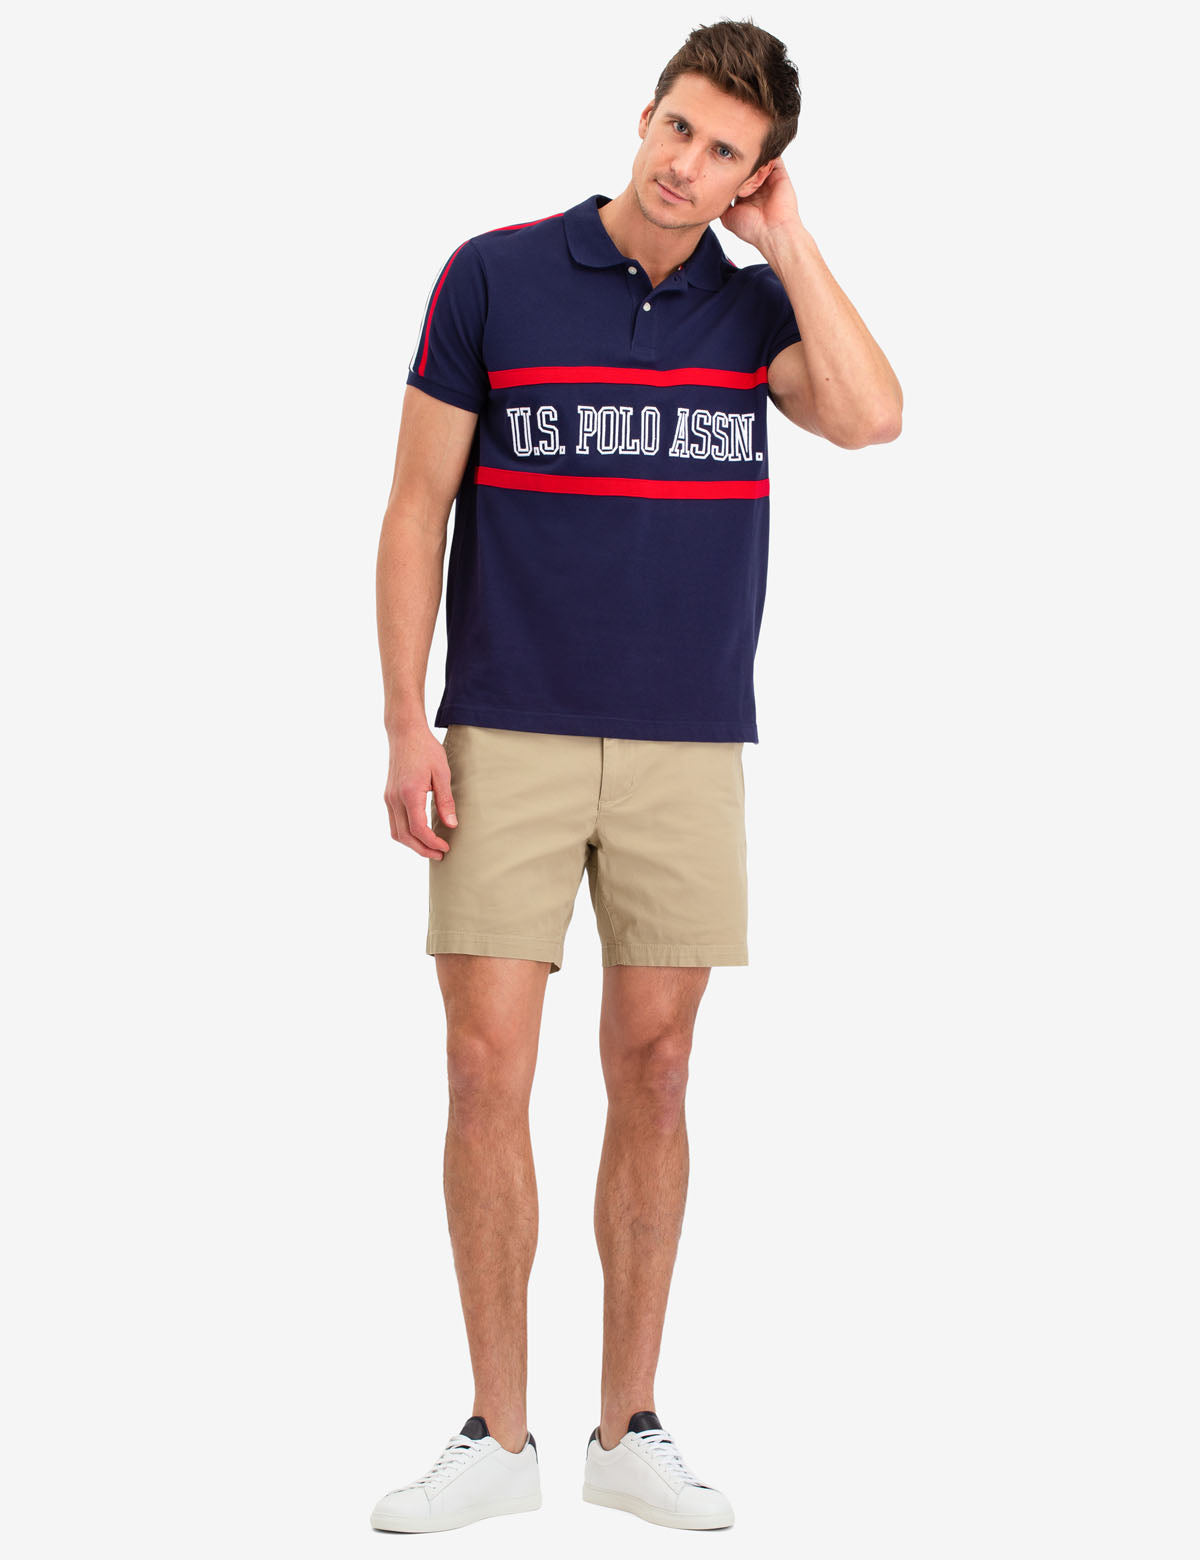 COLORBLOCK CHEST LOGO POLO SHIRT - U.S. Polo Assn.